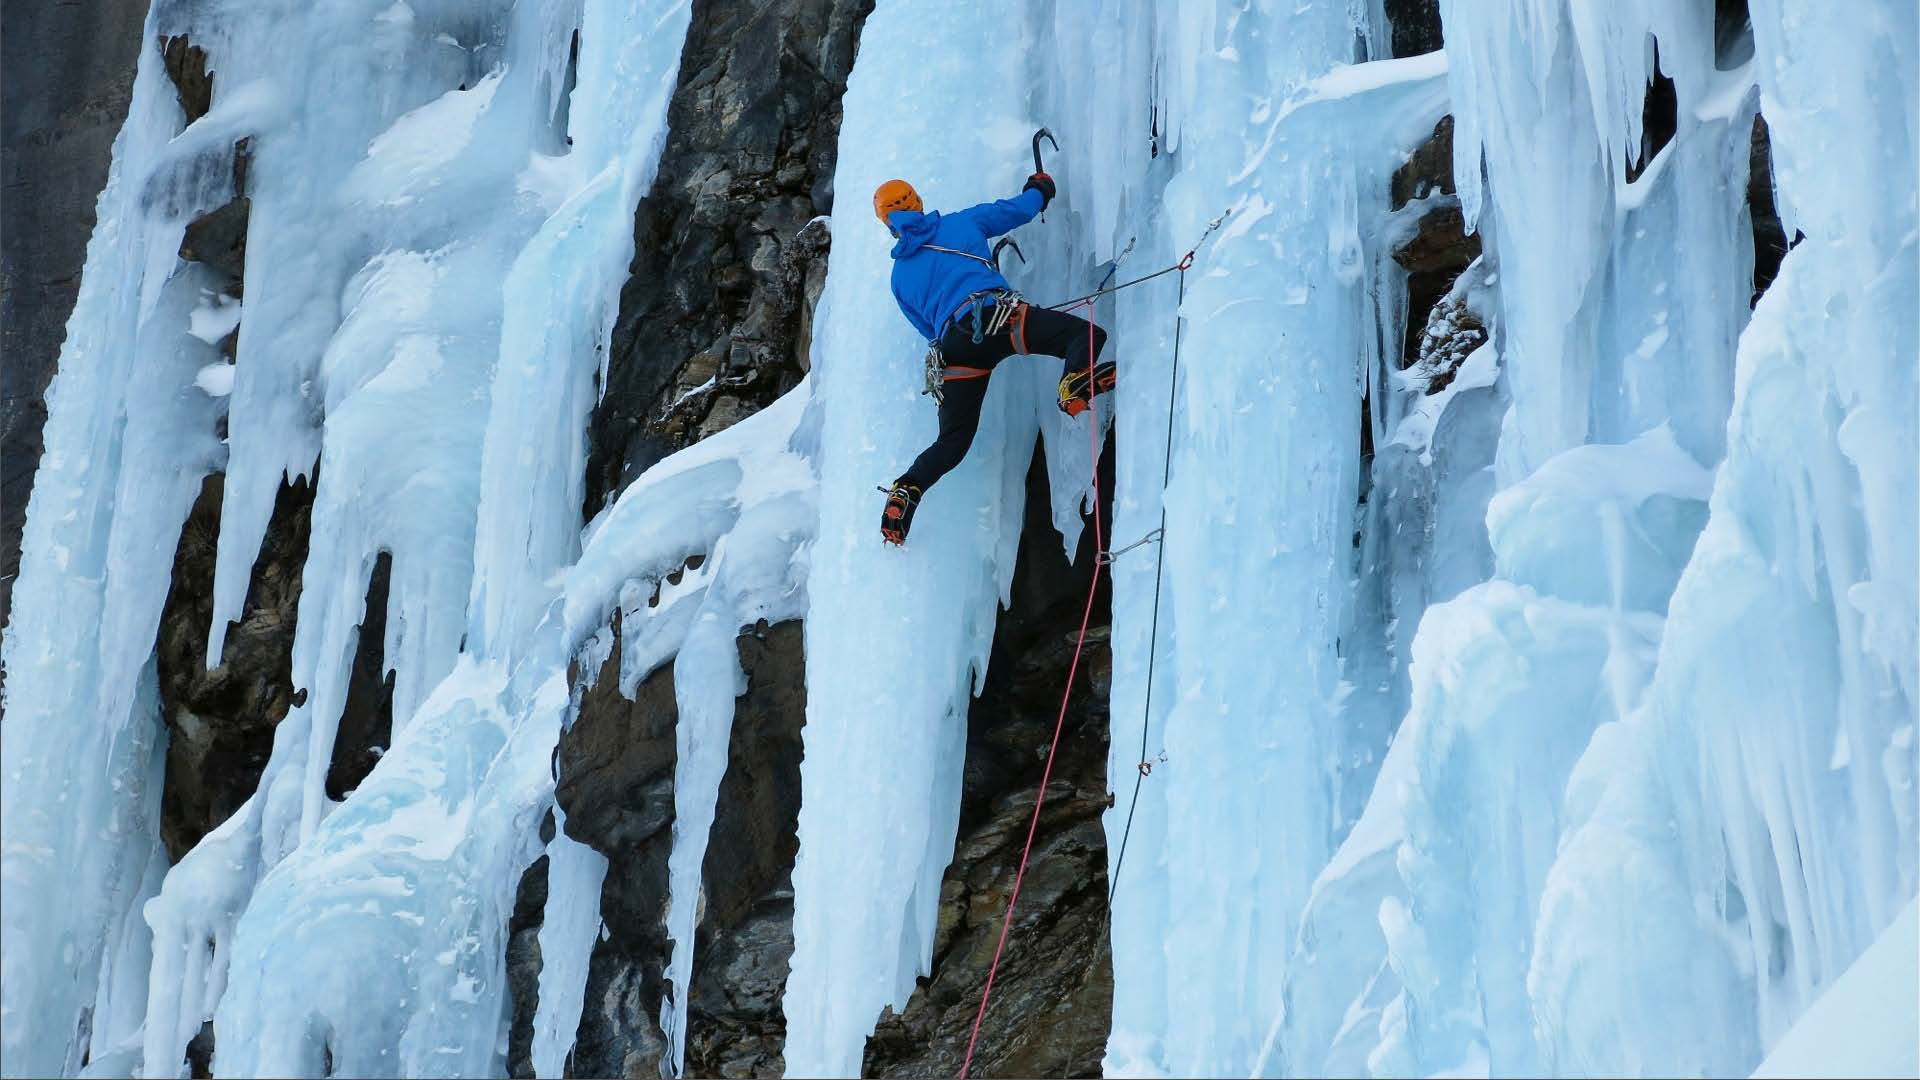 Kenton Cool Ice Climbing